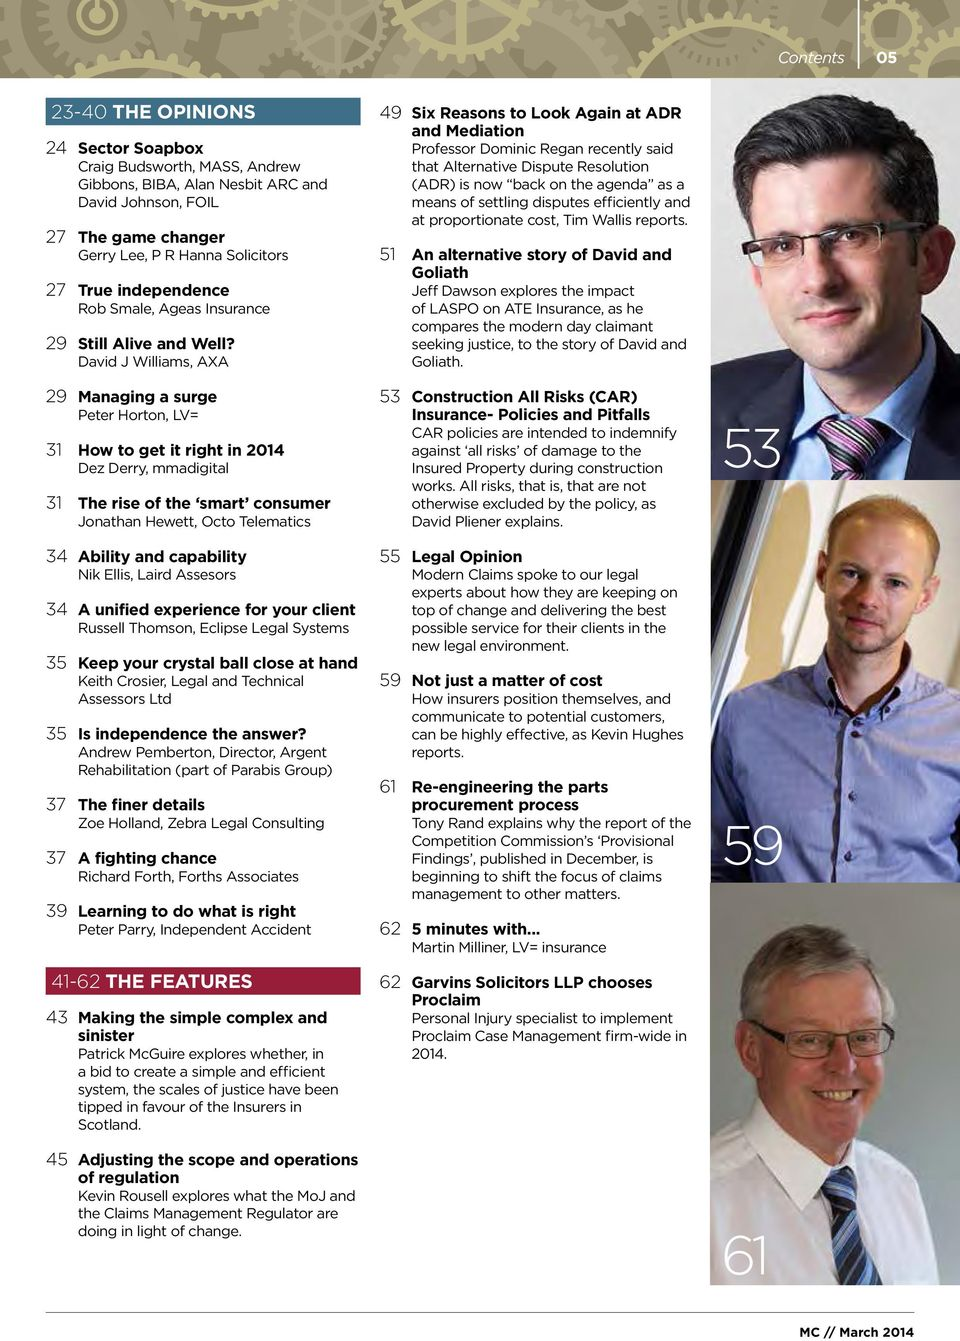 David J Williams, AXA 29 Managing a surge Peter Horton, LV= 31 How to get it right in 2014 Dez Derry, mmadigital 31 The rise of the smart consumer Jonathan Hewett, Octo Telematics 34 Ability and